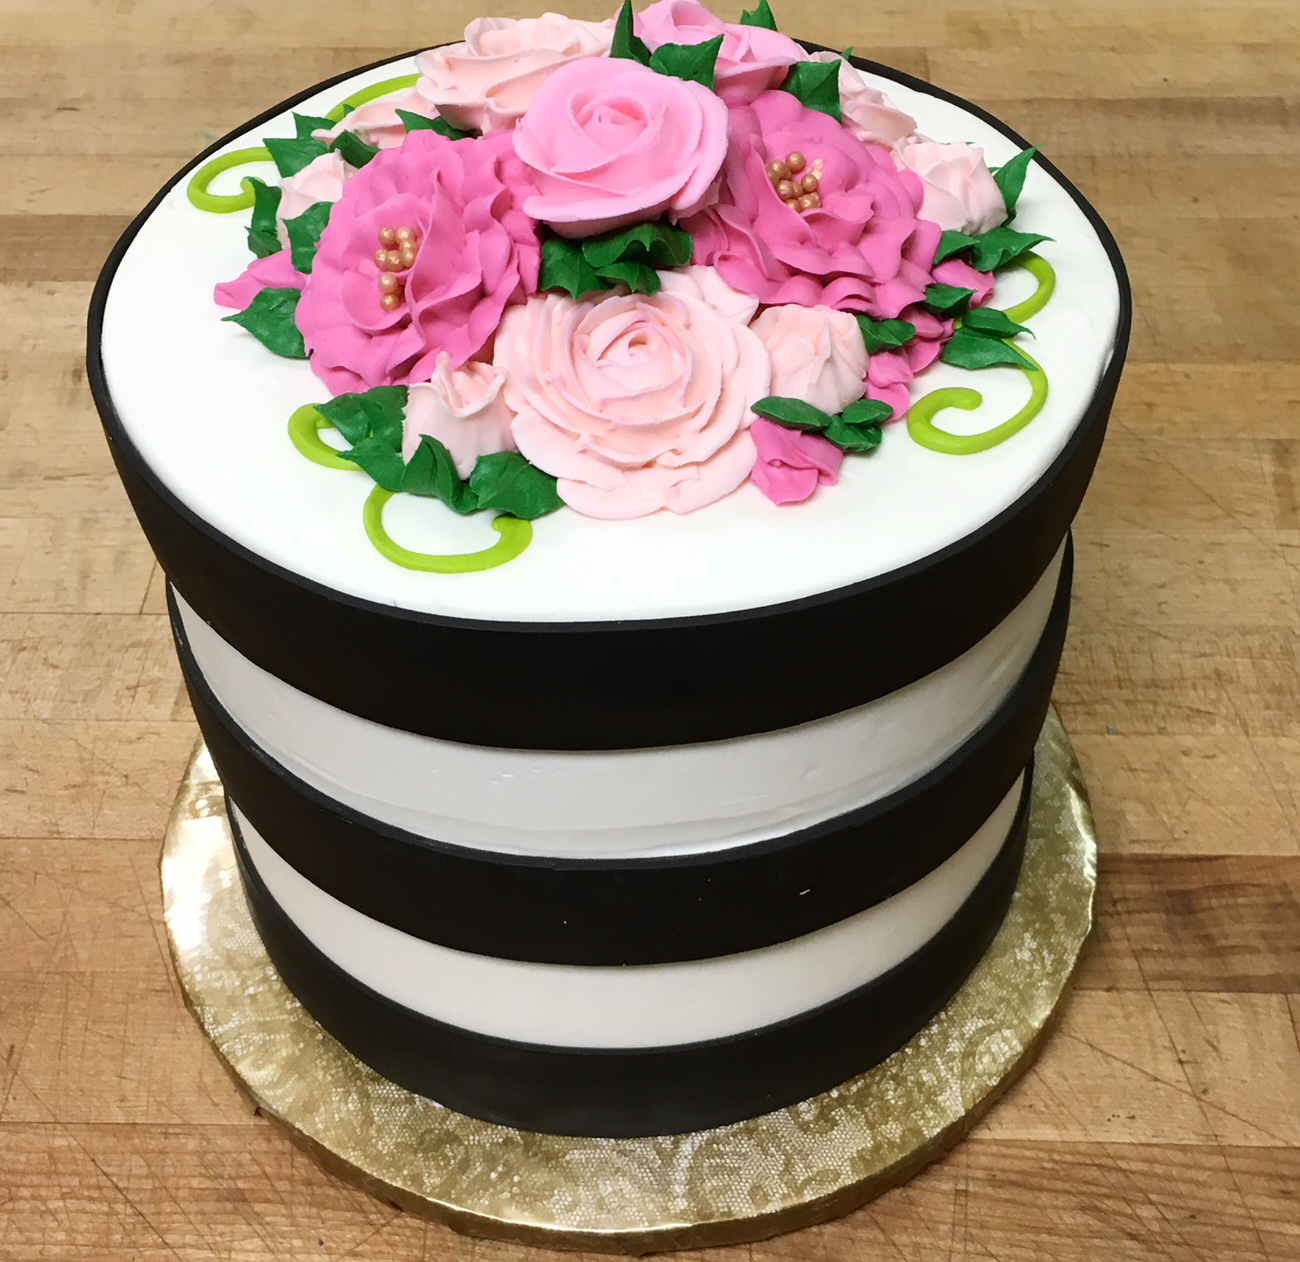 Custom Specialty Cakes Austin  The Cake Plate Specialty Cakes